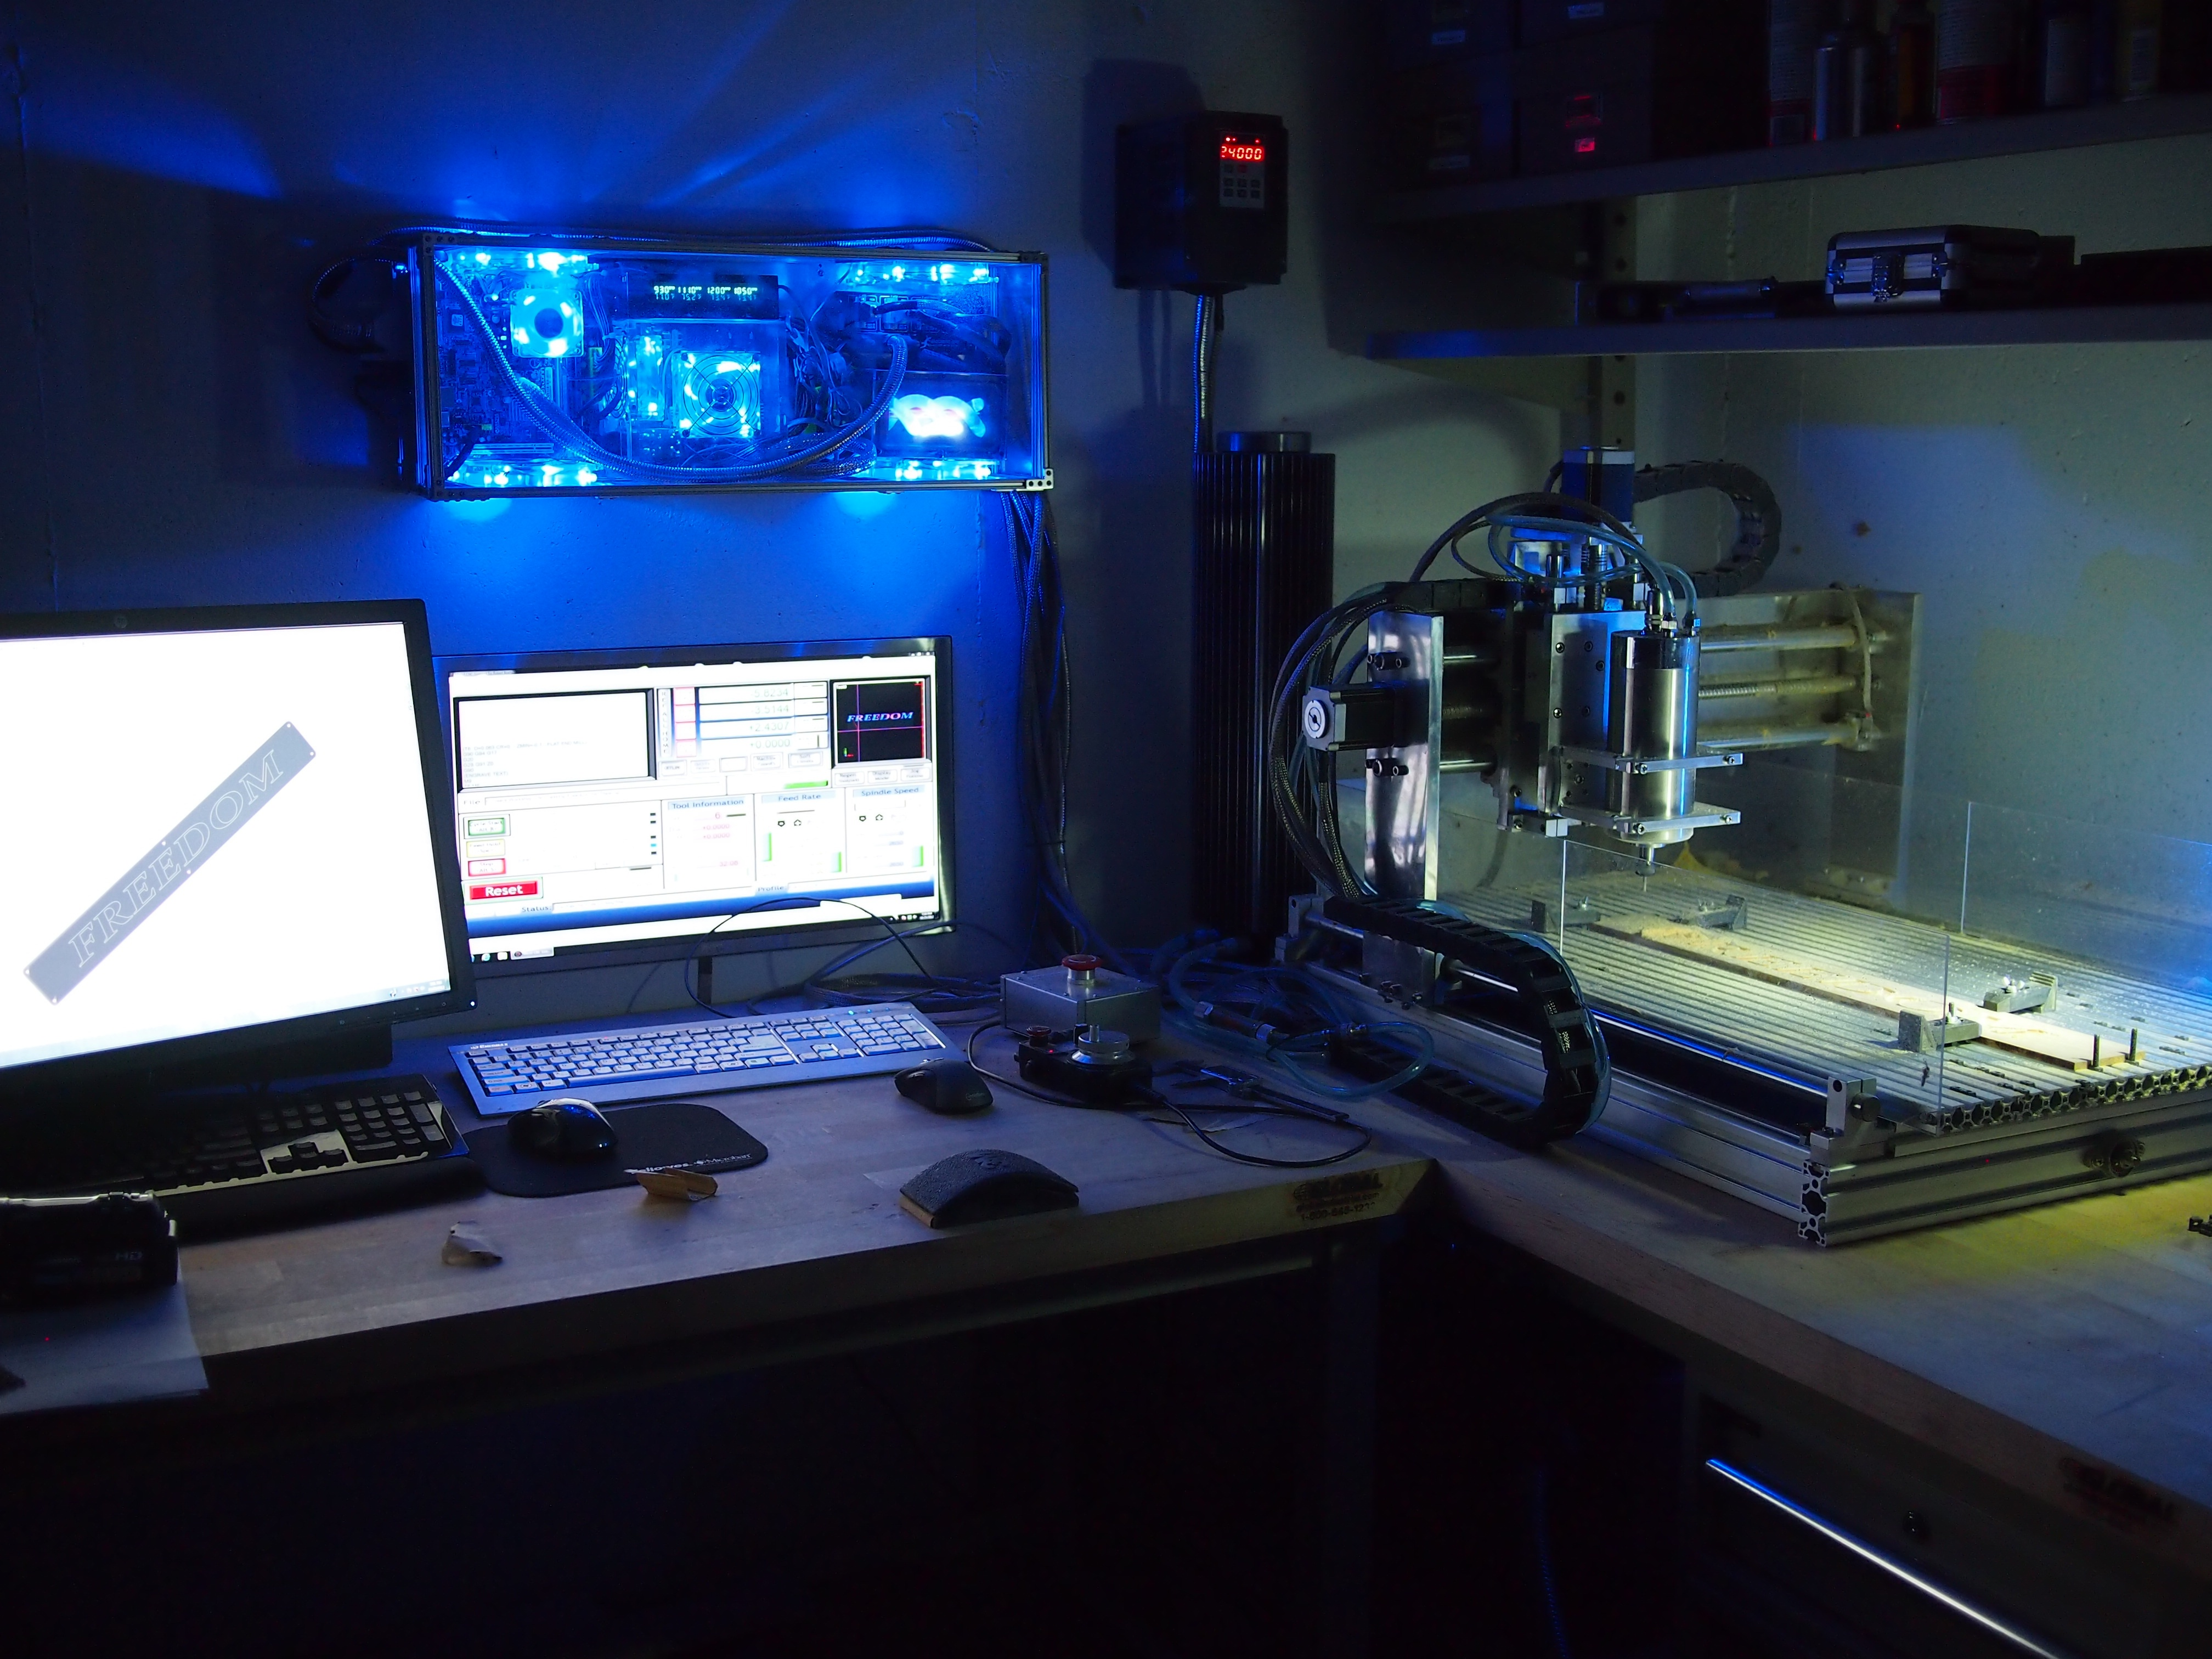 Machining a sign plate: From left to right: The CAD drawing displayed on SolidWorks CAD station, the CNC computer/controller (the blue glowing box), the CNC screen, the VFD spindle controller (with red digital read out), the cooling tower, and the CNC itself (on the right) with the part being machined.